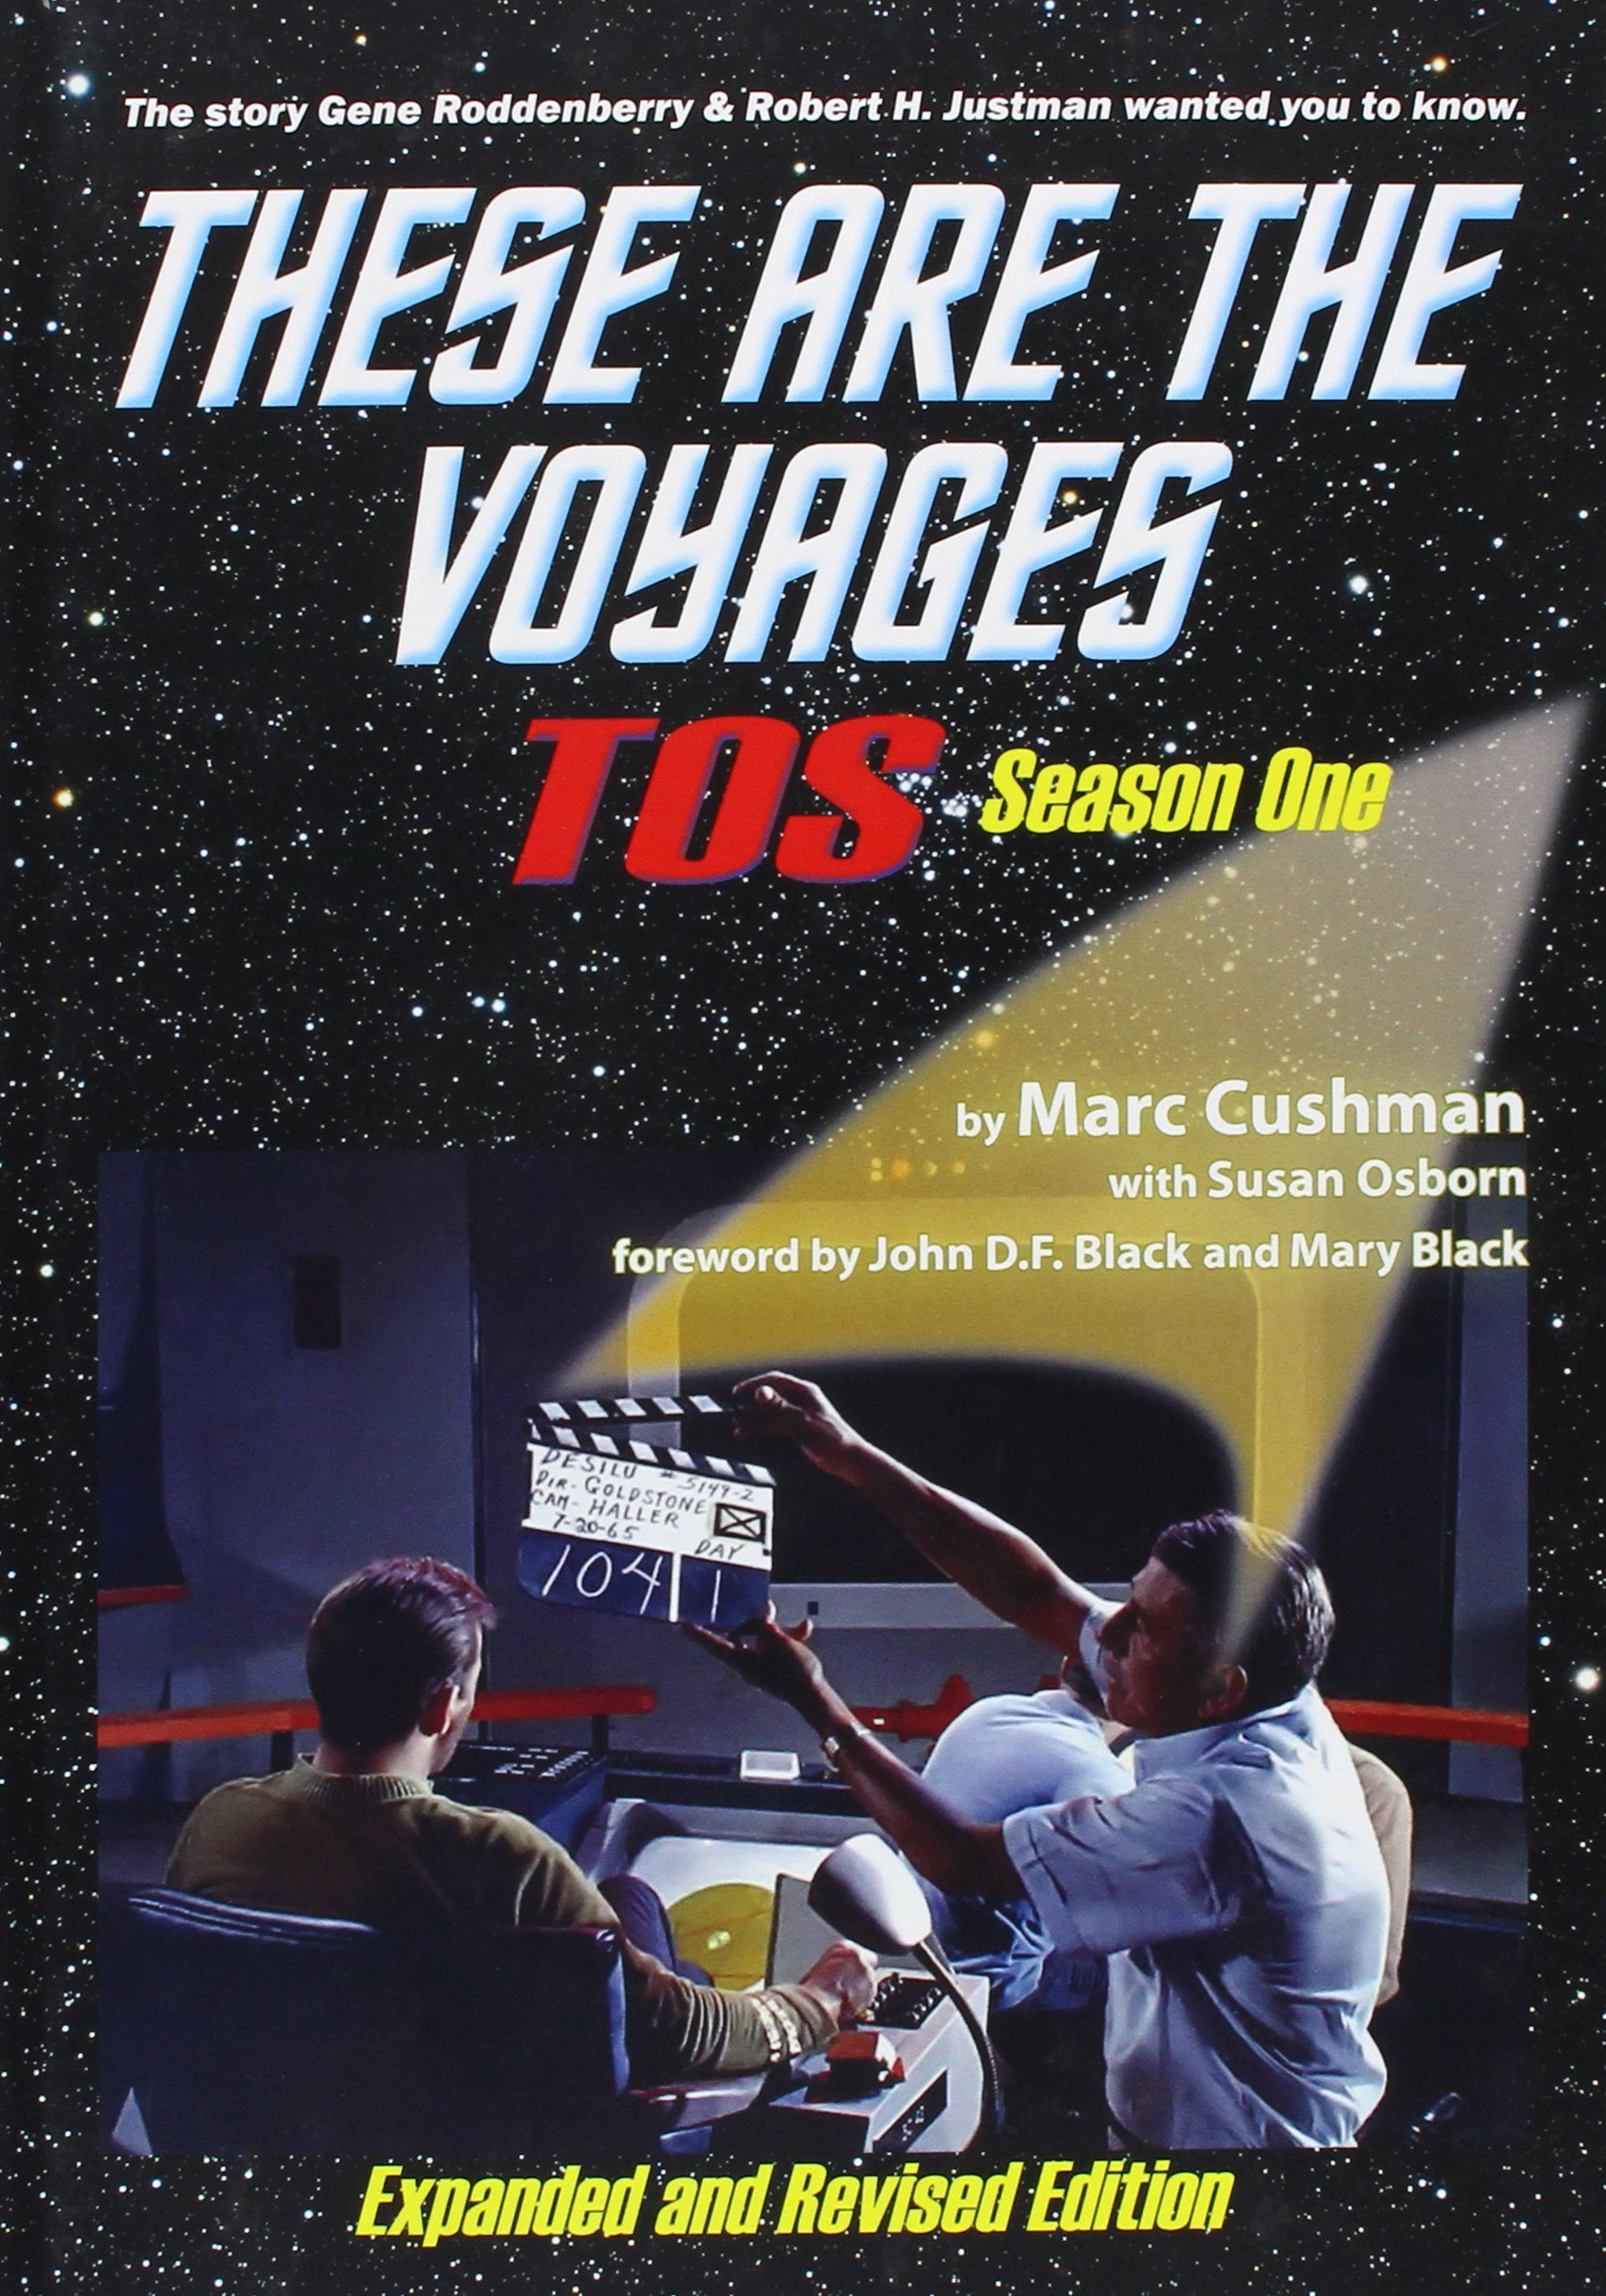 """""""These Are the Voyages: TOS: Season 1 Revised and Expanded Edition"""" Review by Borg.com"""